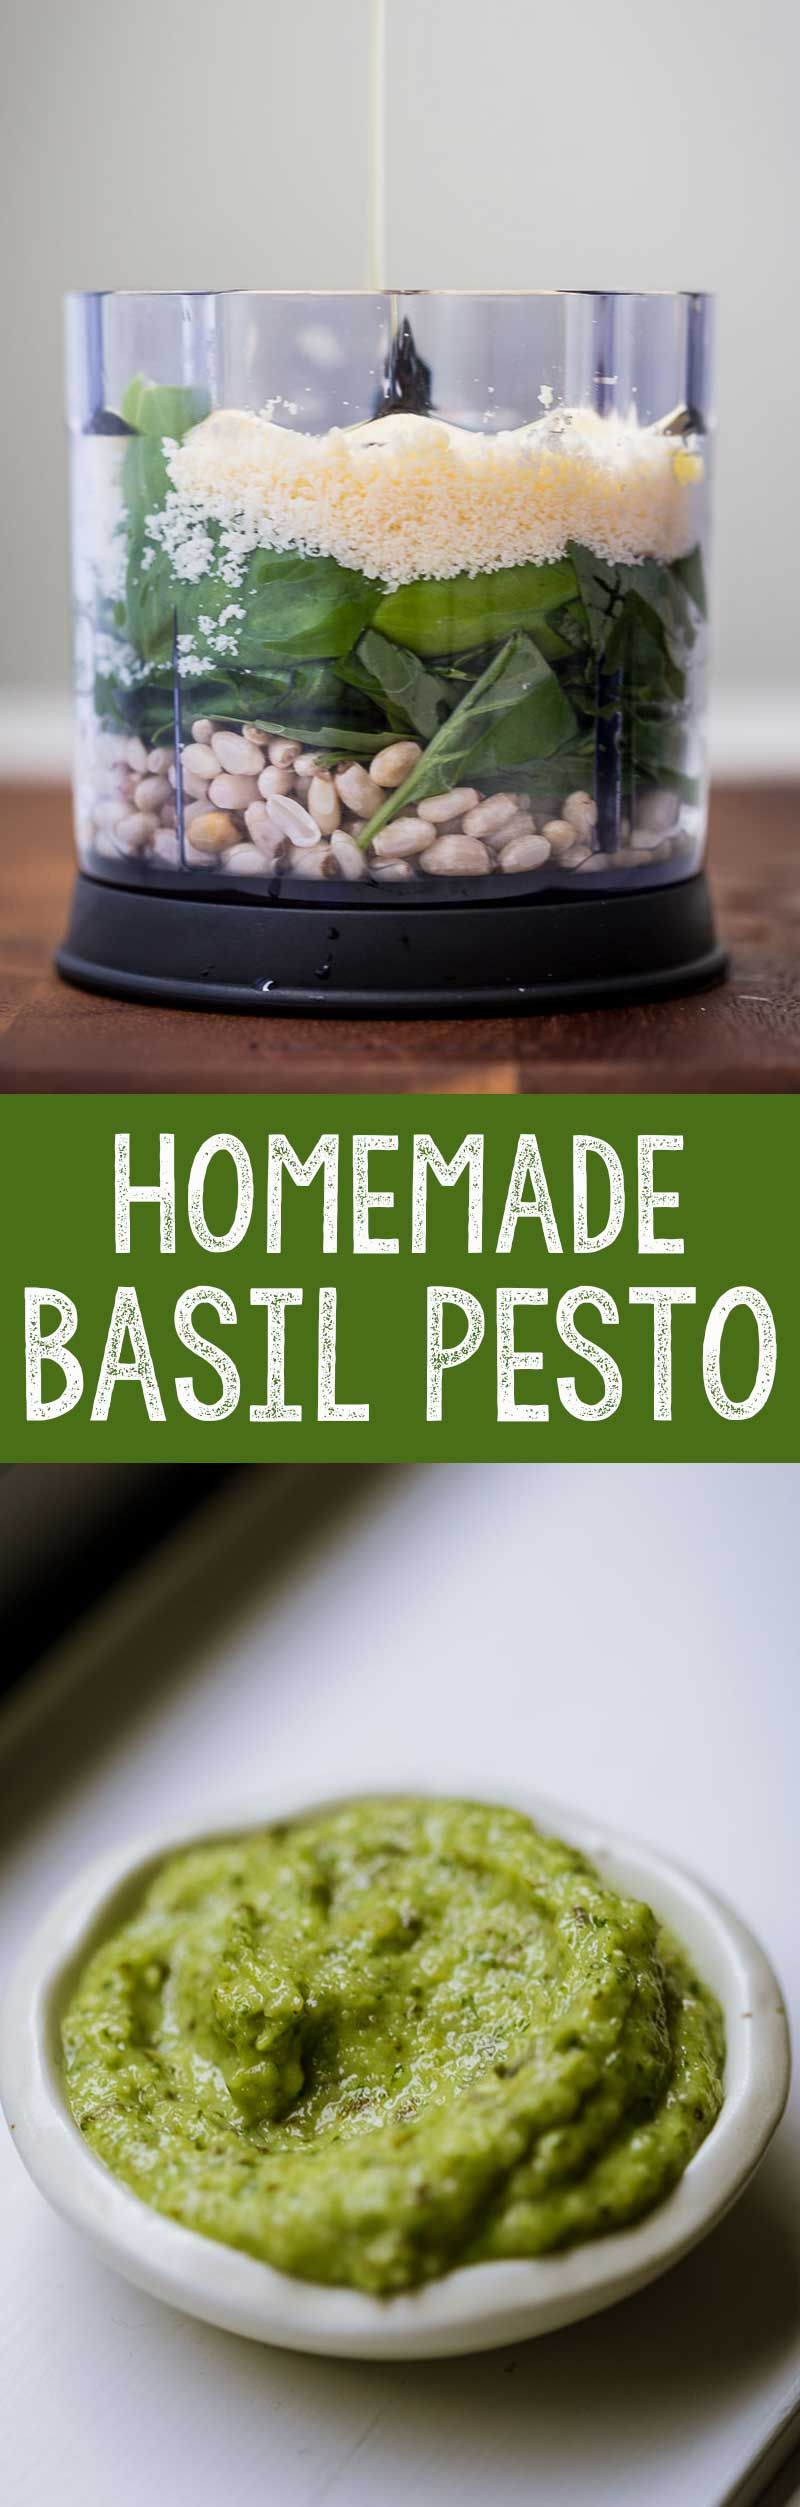 Quick & Easy Homemade Basil Pesto